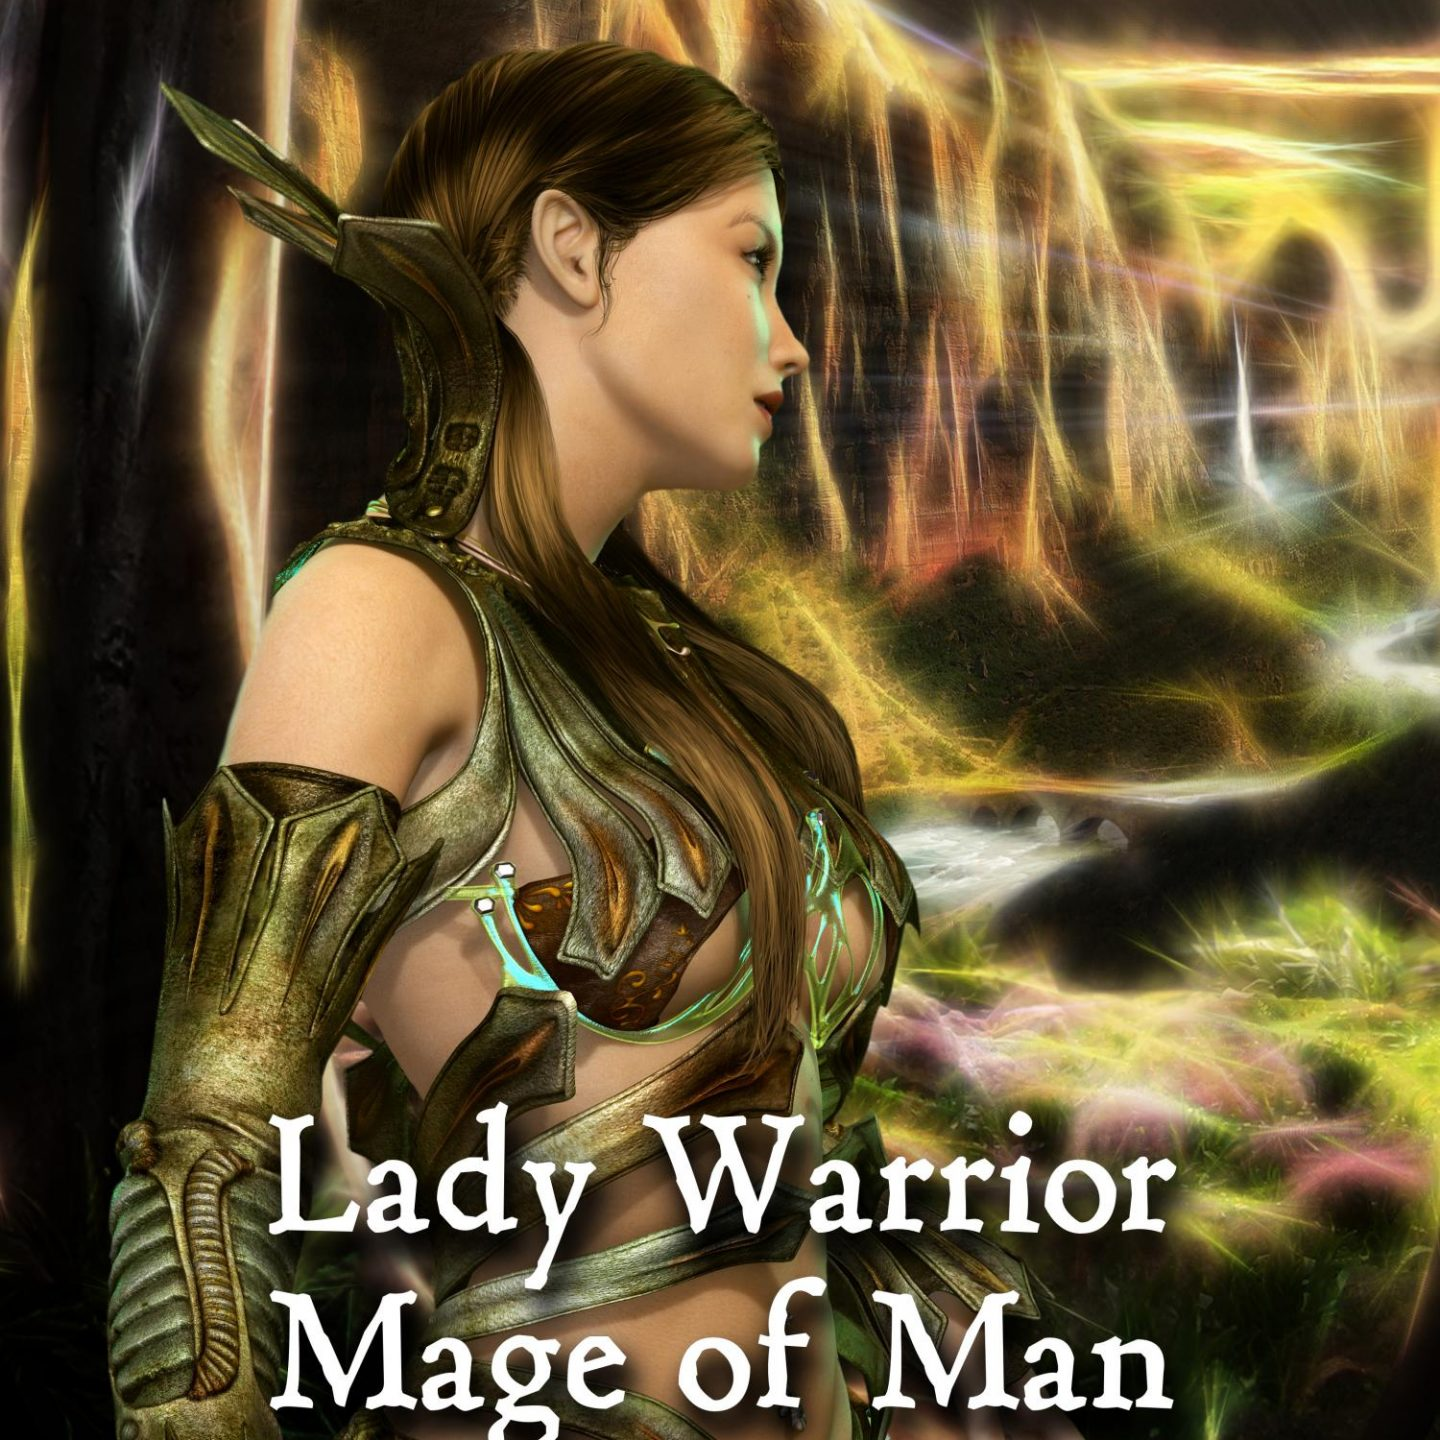 Lady Warrior Saga